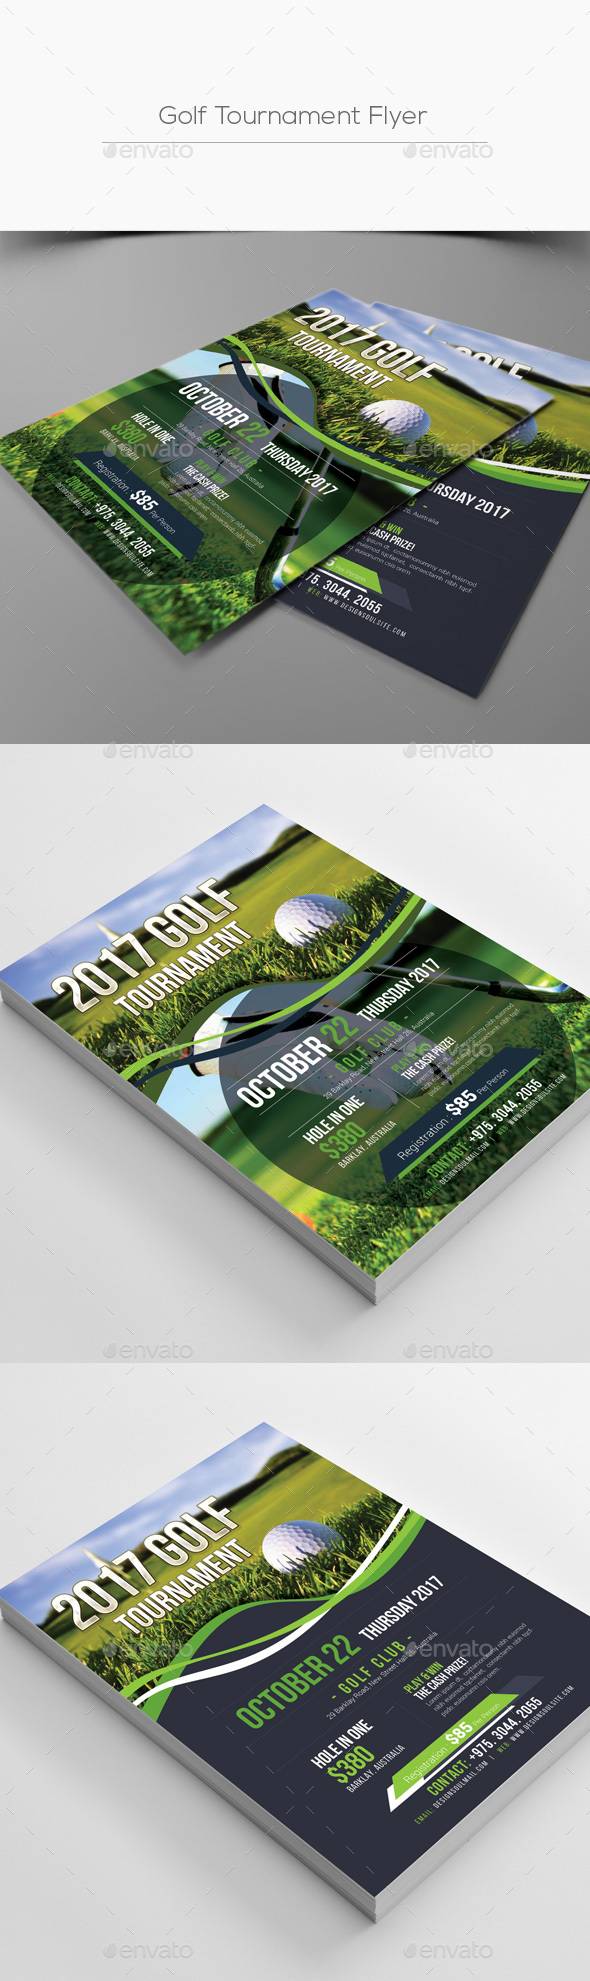 Golf Tournament Flyer - Corporate Flyers